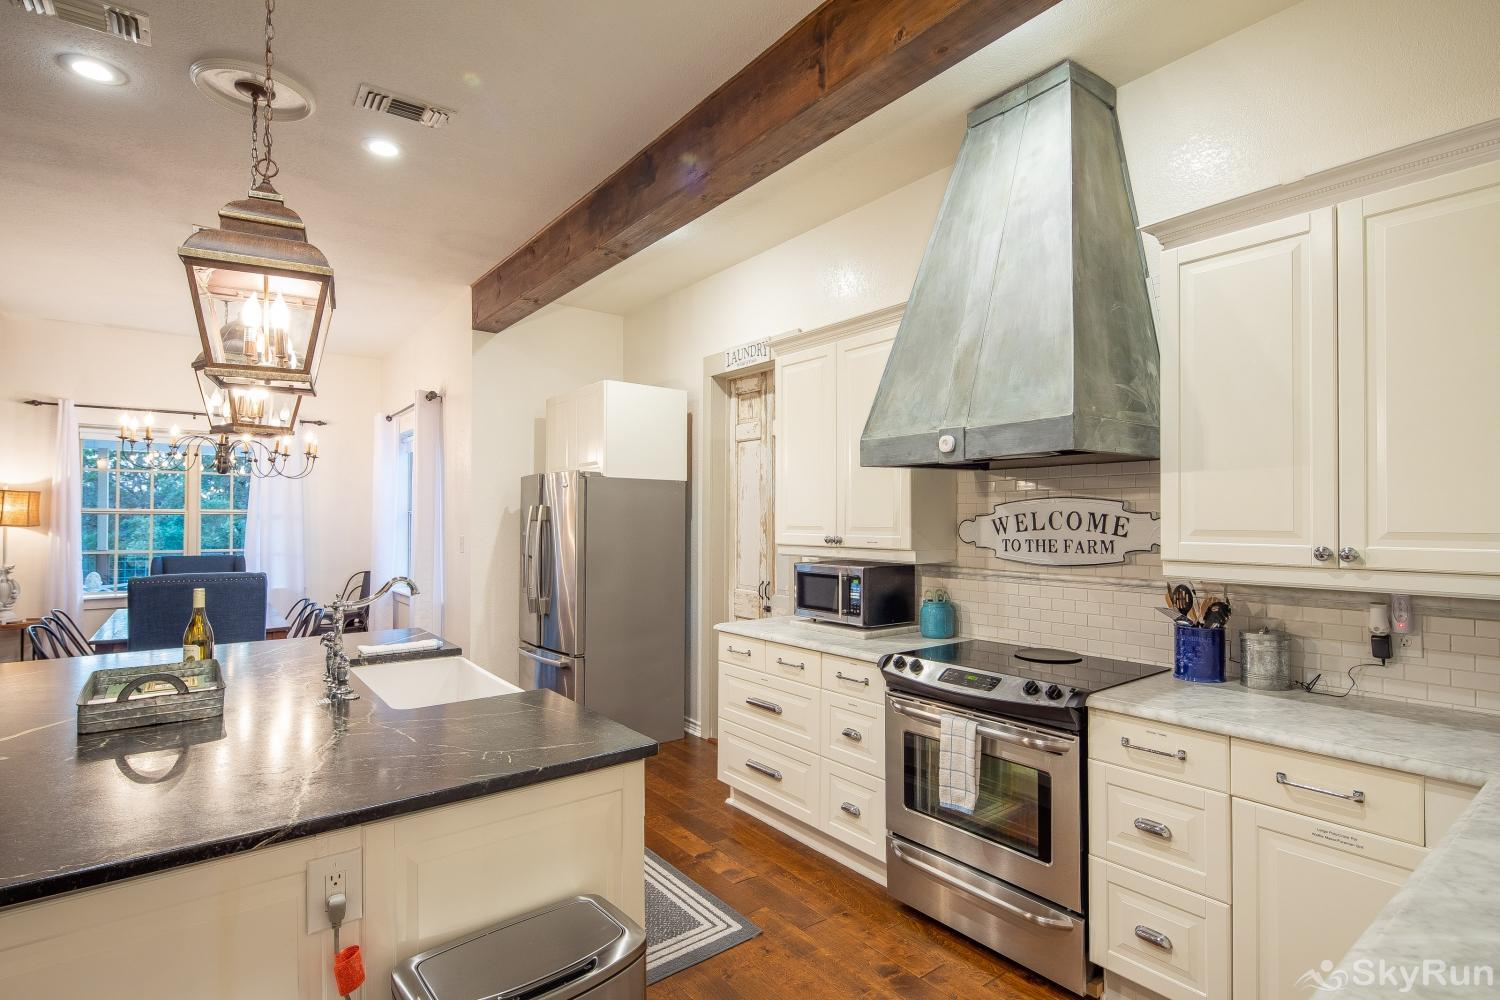 STONE RIDGE RETREAT Kitchen equipped with all cooking and dining essentials